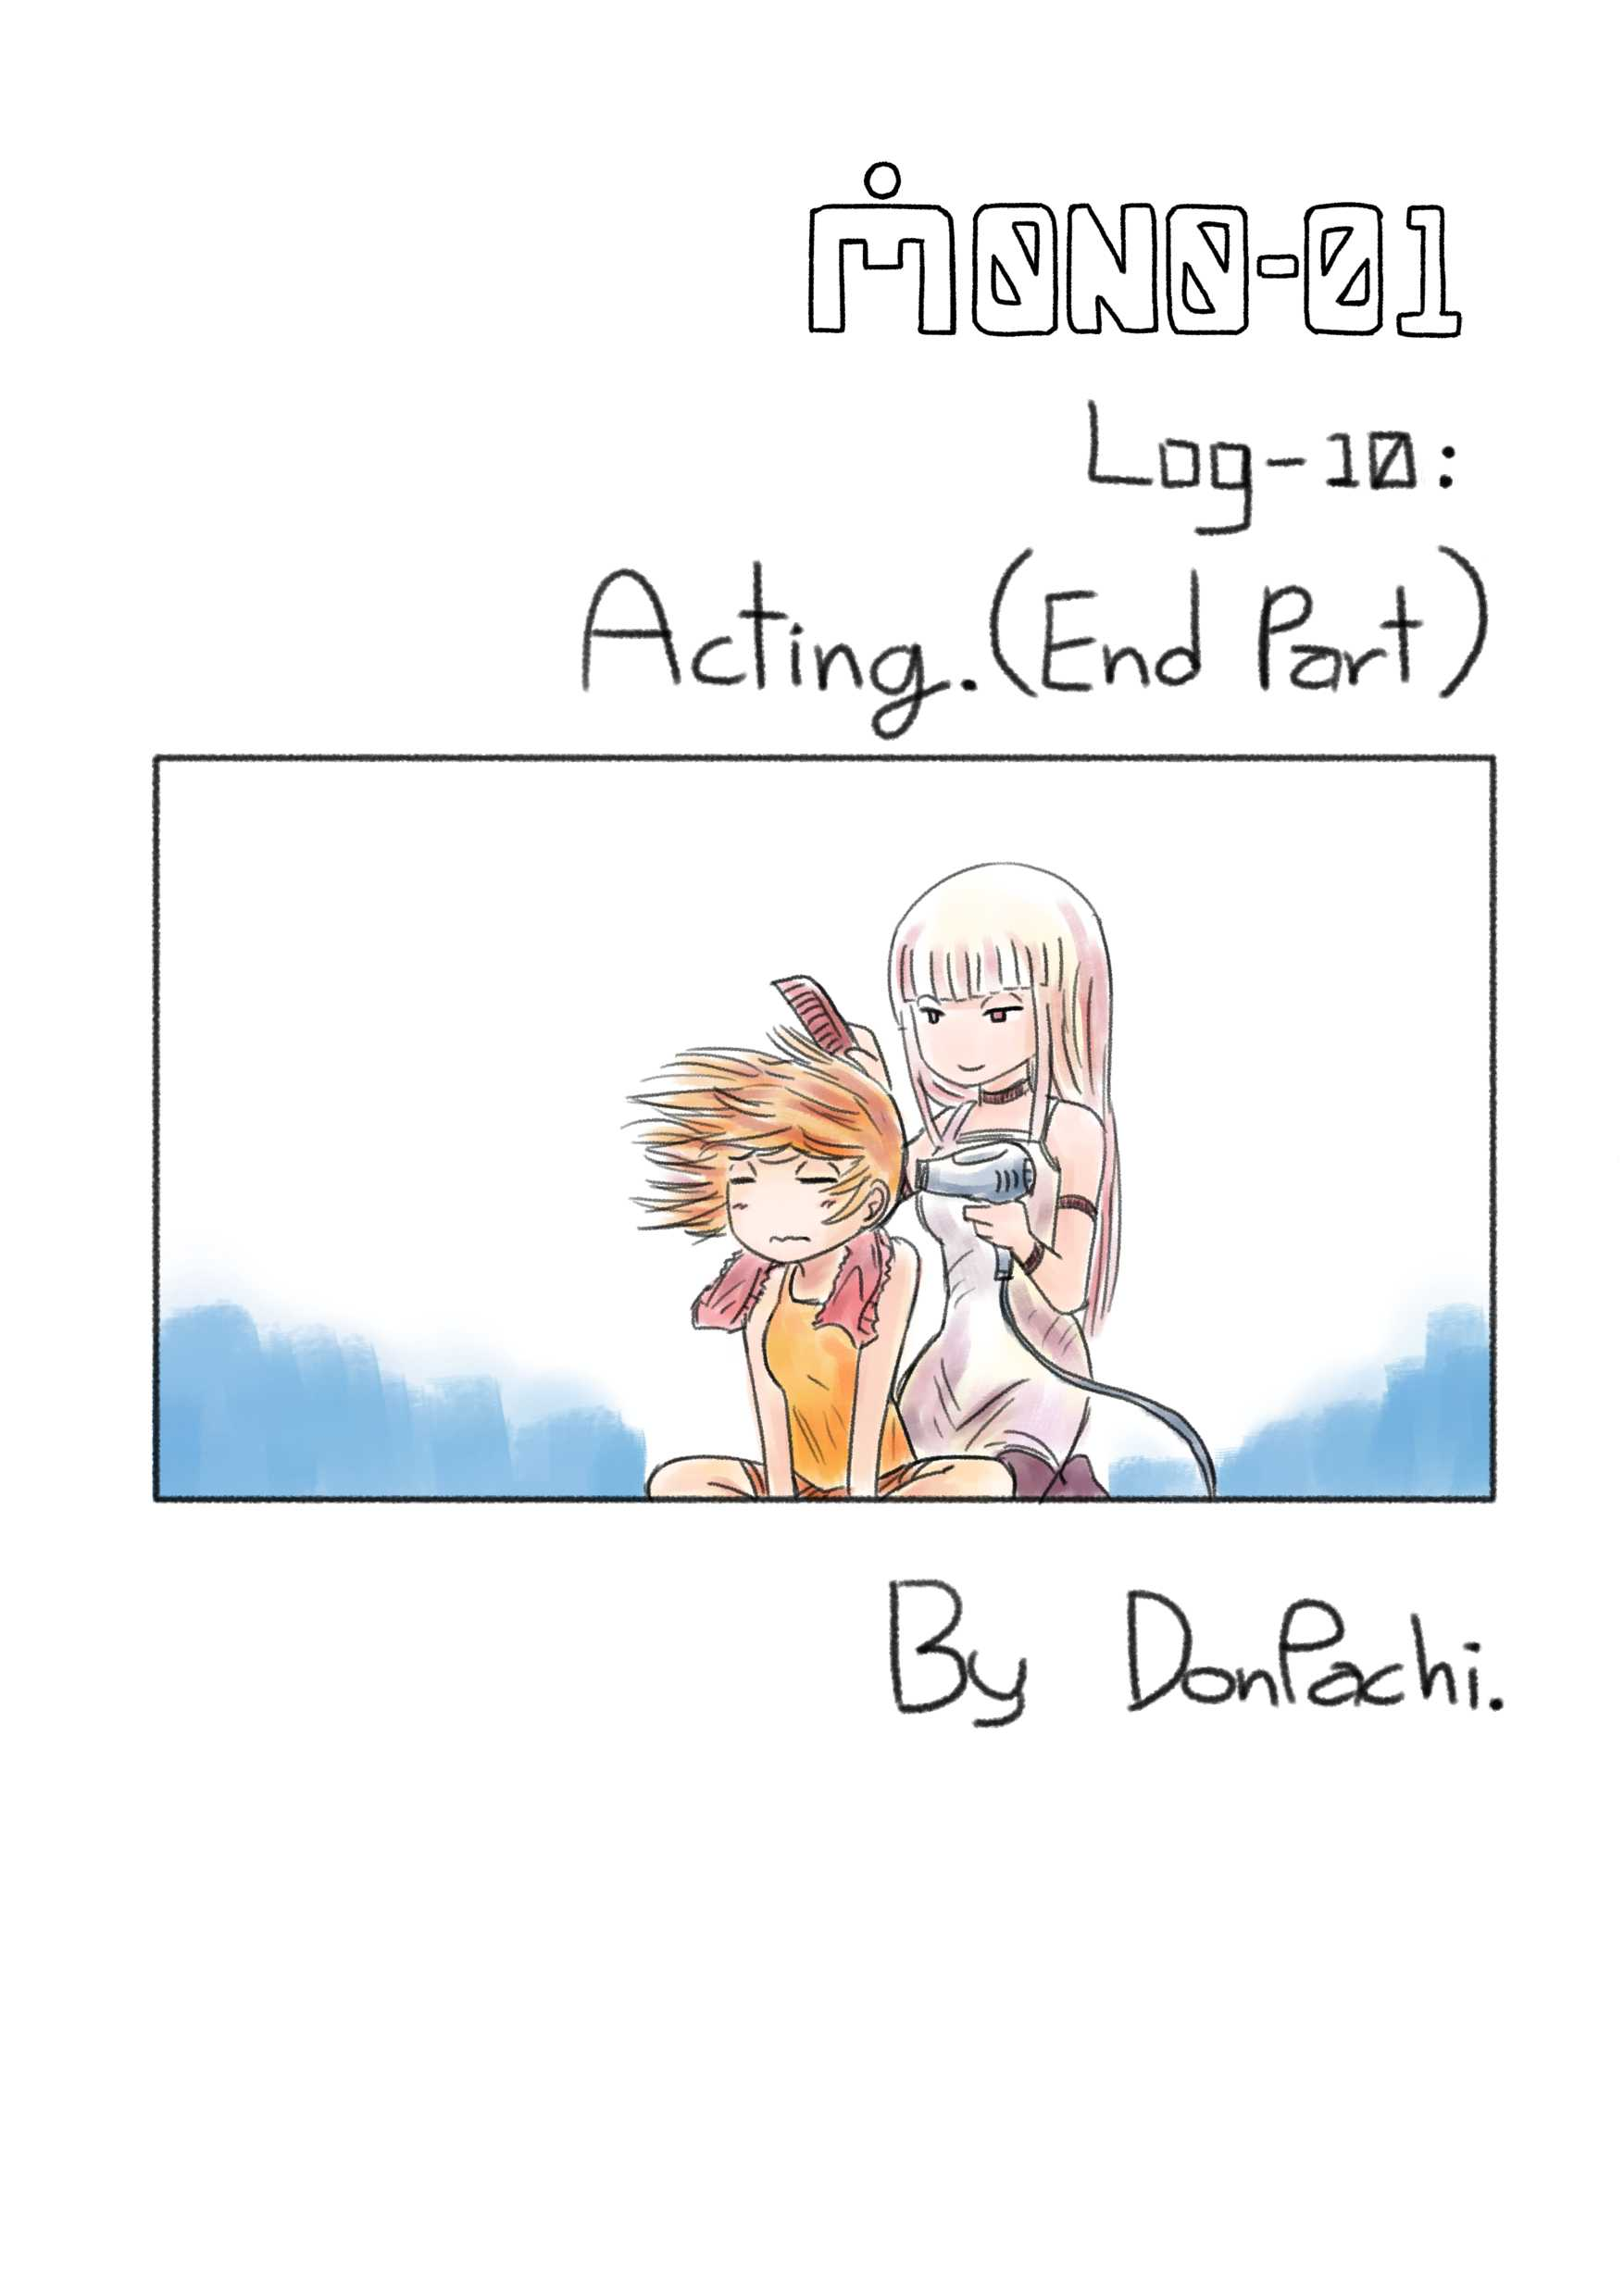 Acting.(End Part)